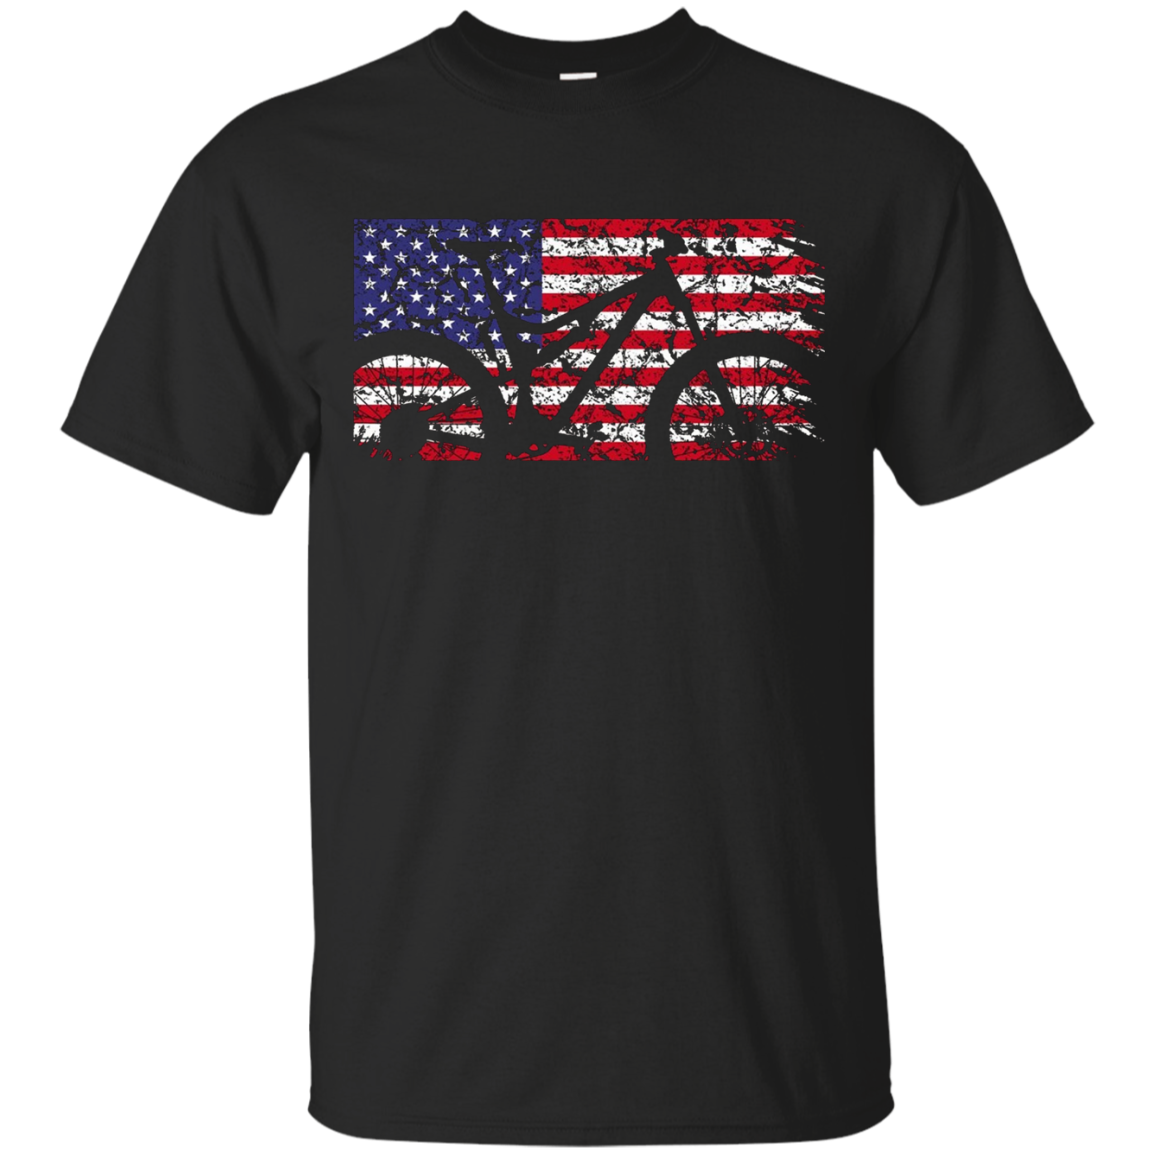 Mountain Bike American Flag Shirt - MTB USA Flag T-Shirt